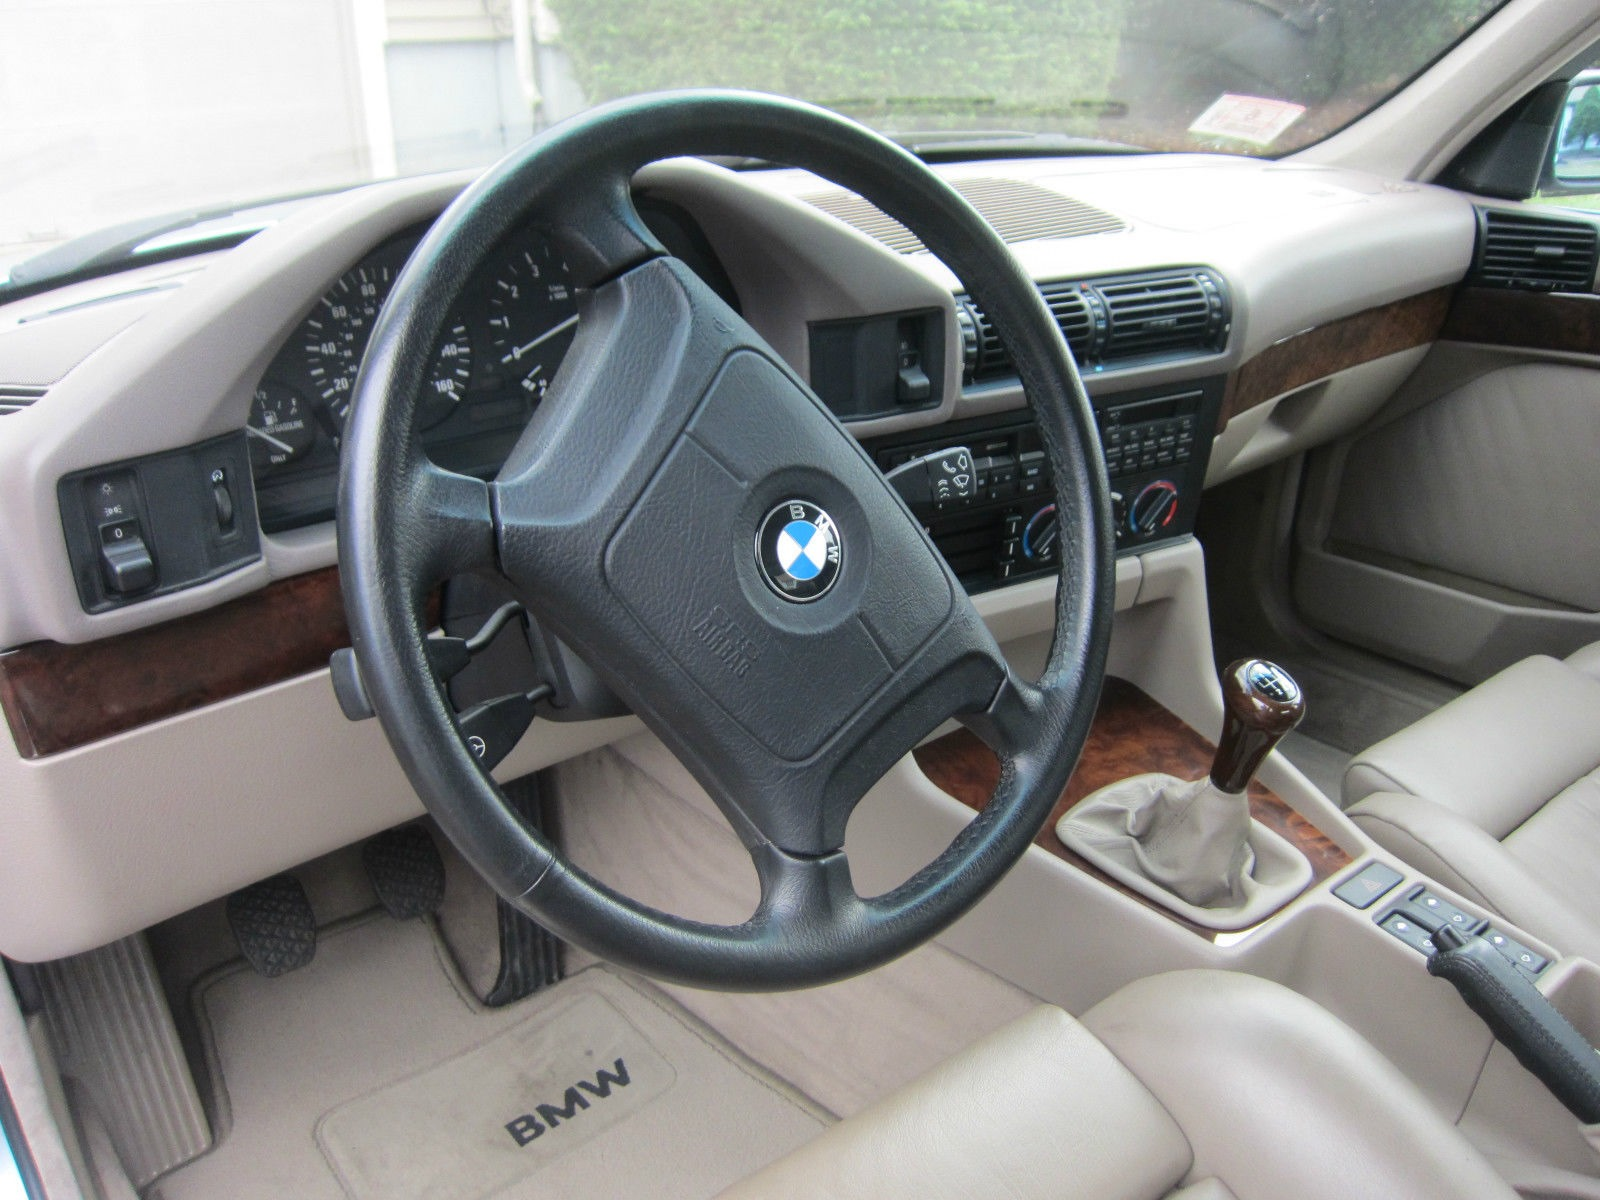 Fourtitude ebay fotd 1995 bmw 540i with only 21k miles httpbit1hdevpp sciox Image collections